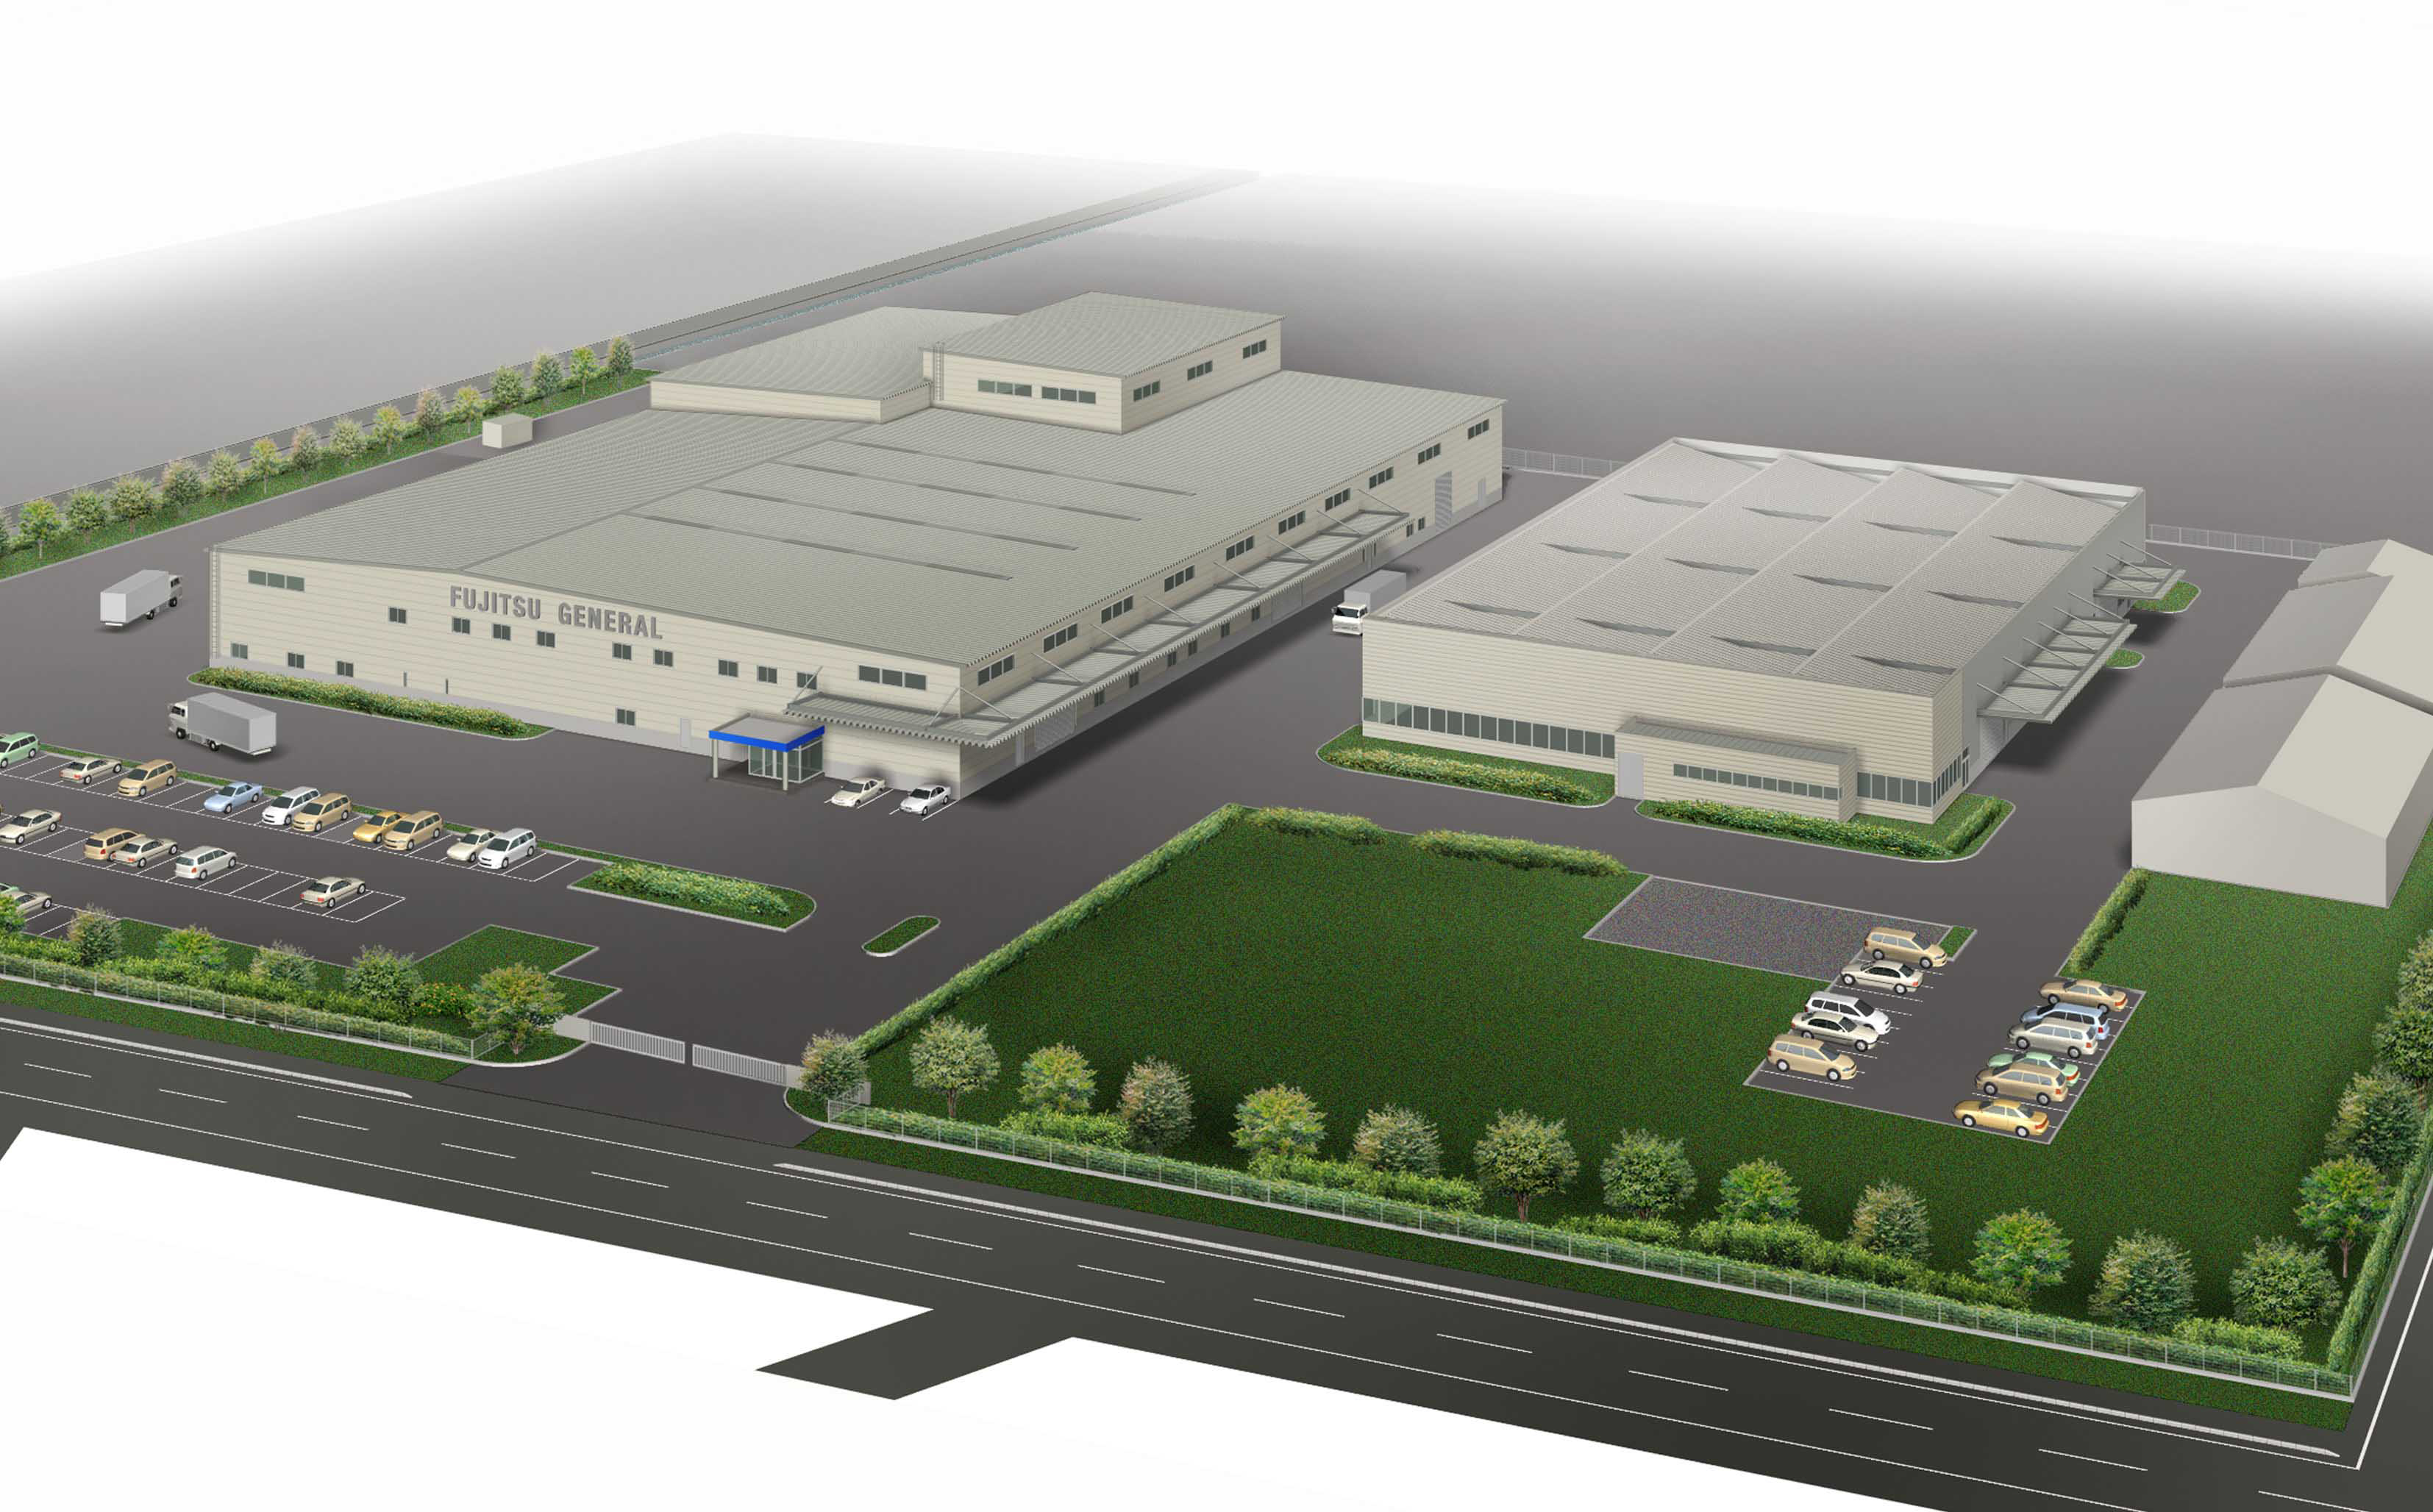 Fuji Ecocycle Constructing A New Factory Fujitsu General